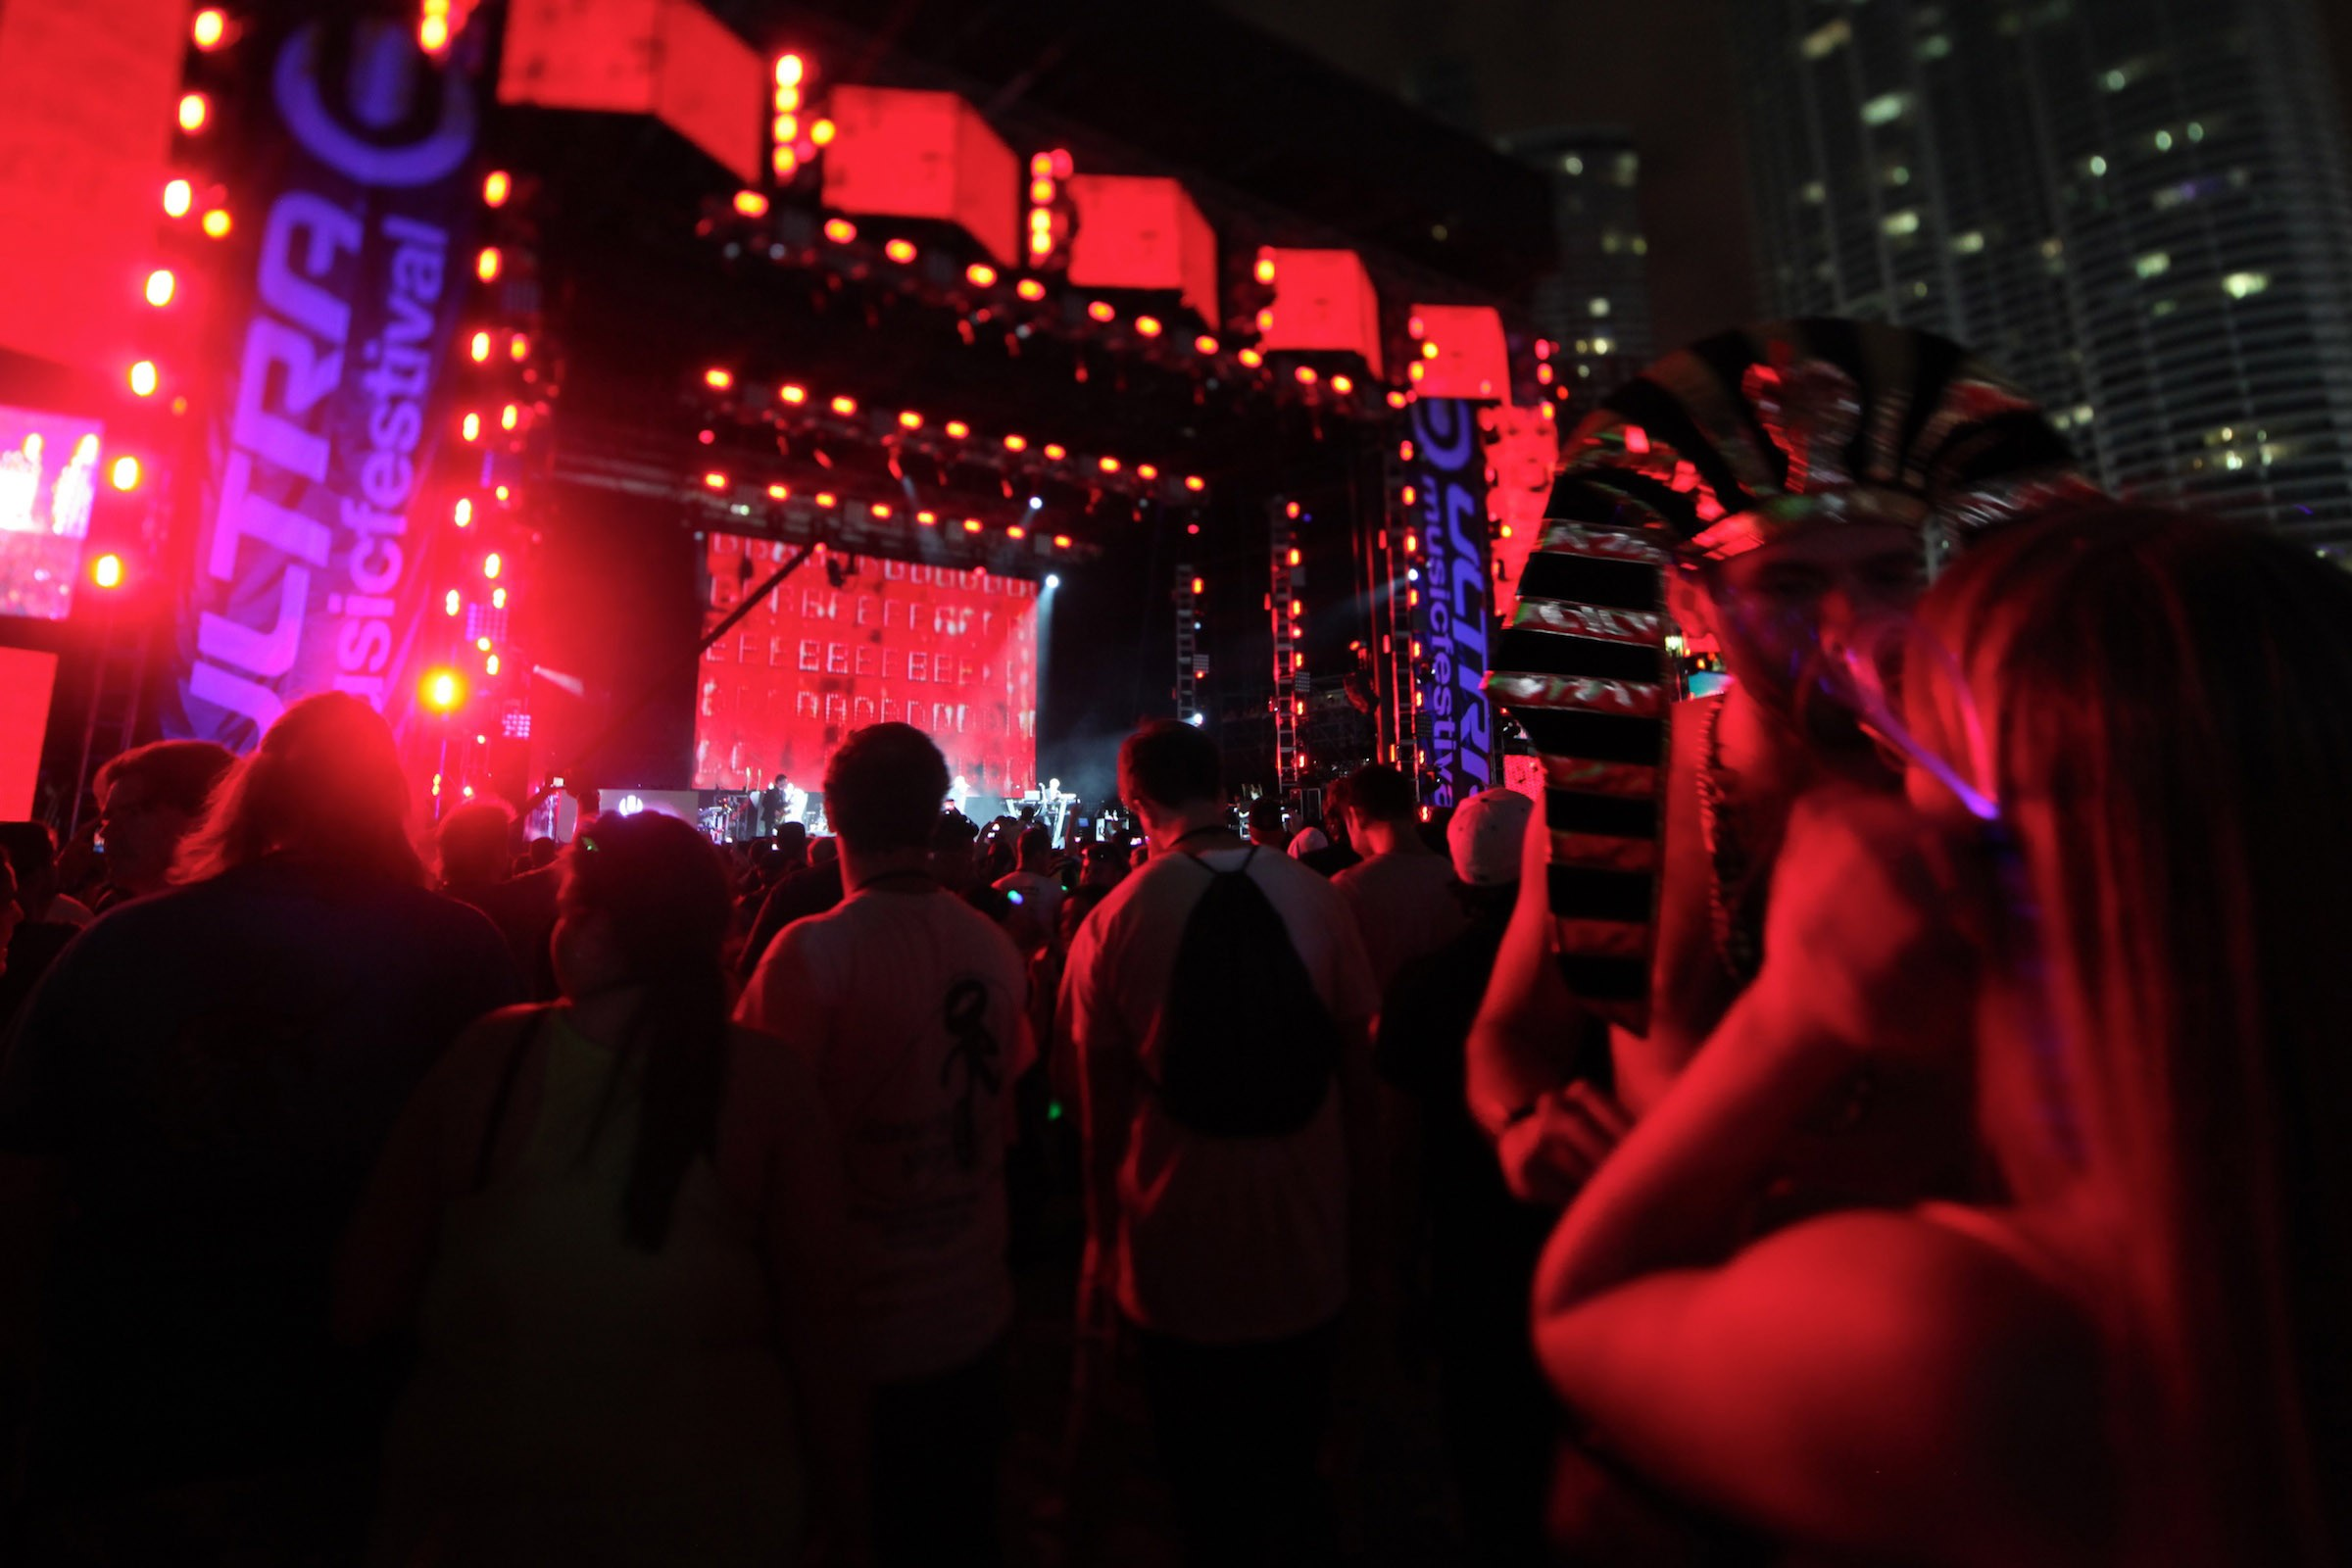 miami-ultra-music-festival-ends-with-chaotic-crowd-exit